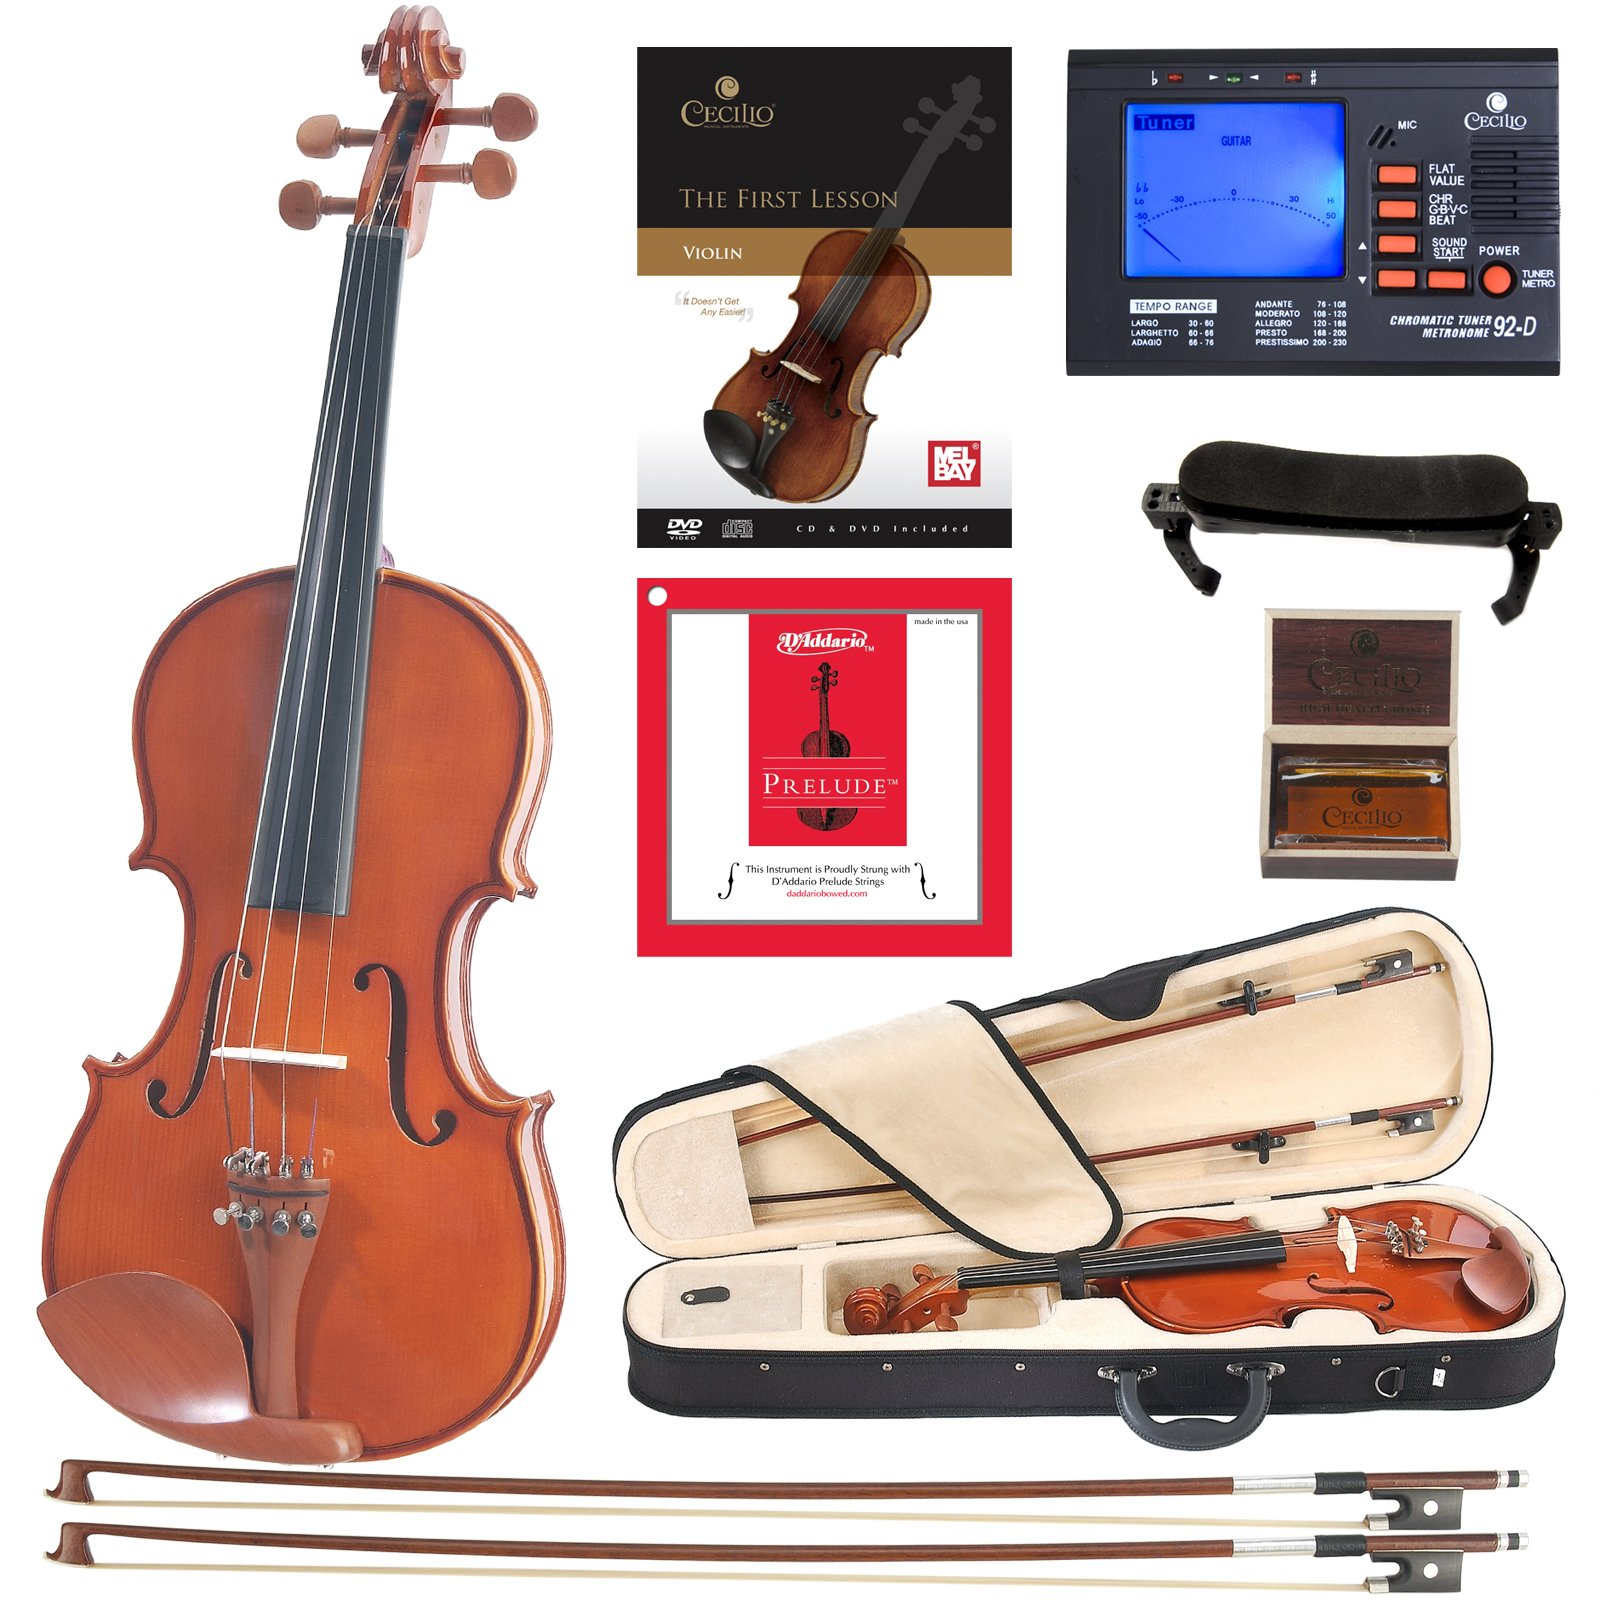 Cecilio CVN-200 Solidwood Violin with D'Addario Prelude Strings, Size 3/4